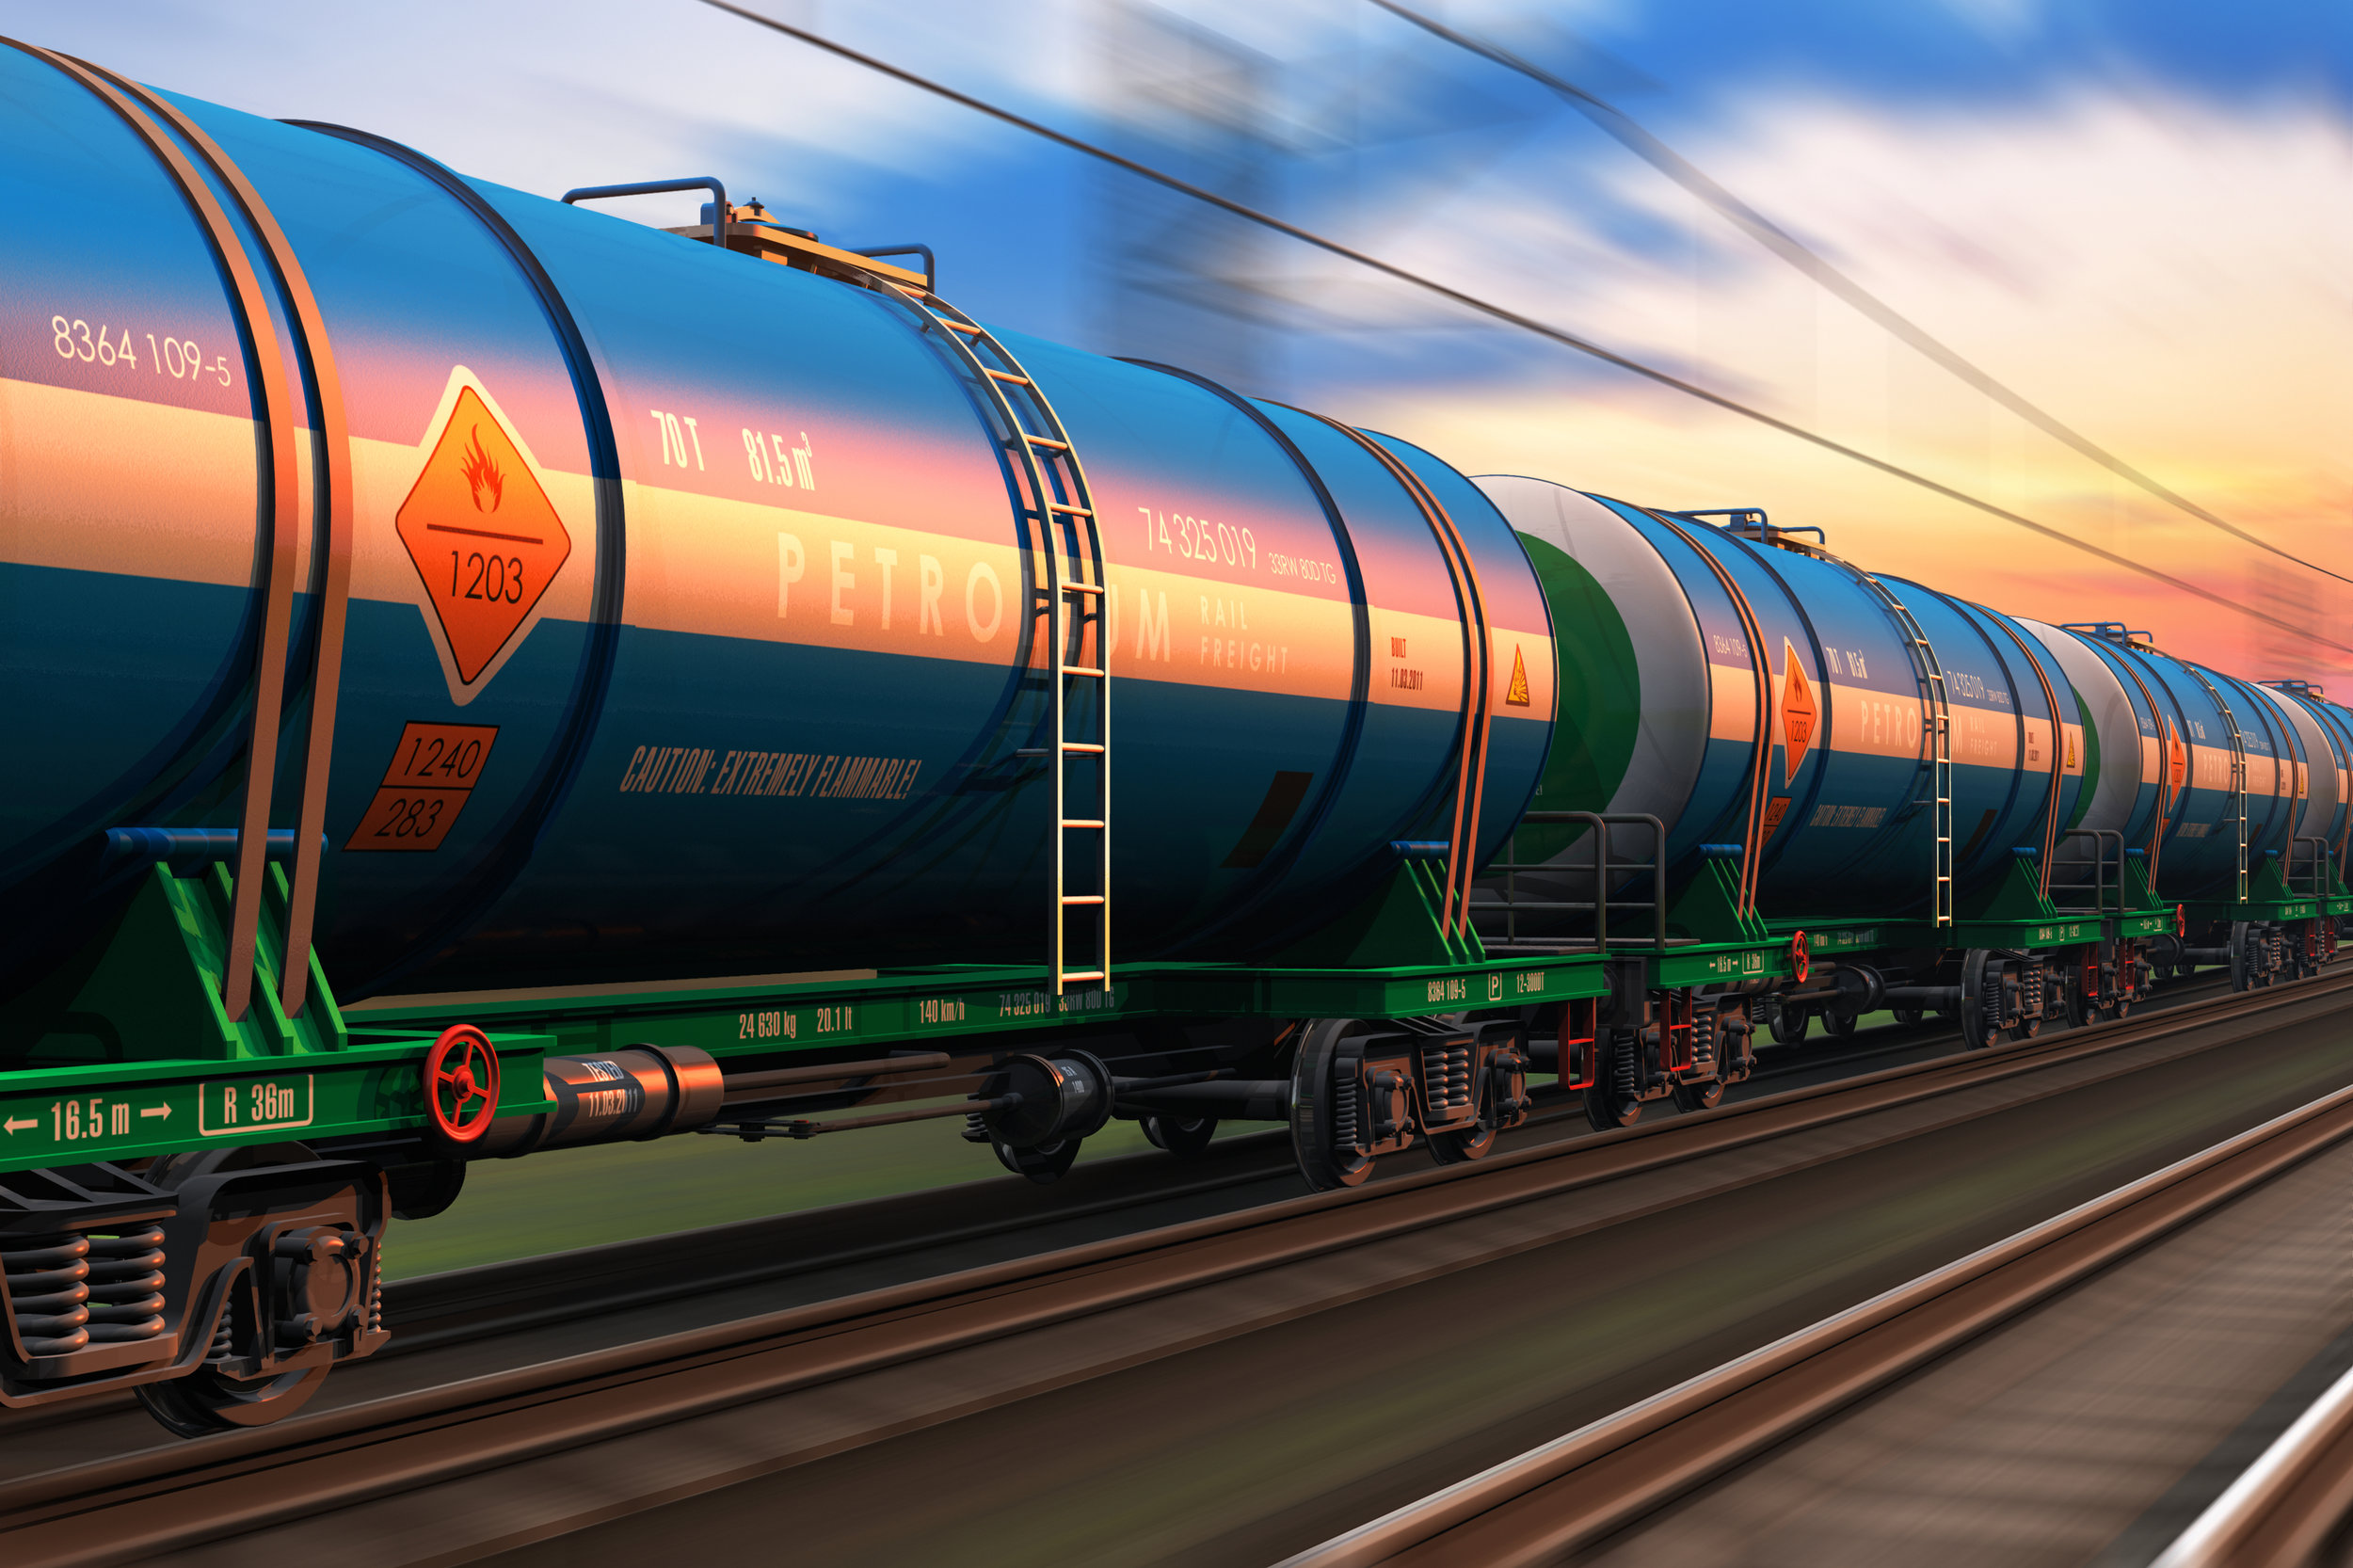 Freight-train-wtih-petroleum-tankcars-498791427_3867x2578 (1).jpeg